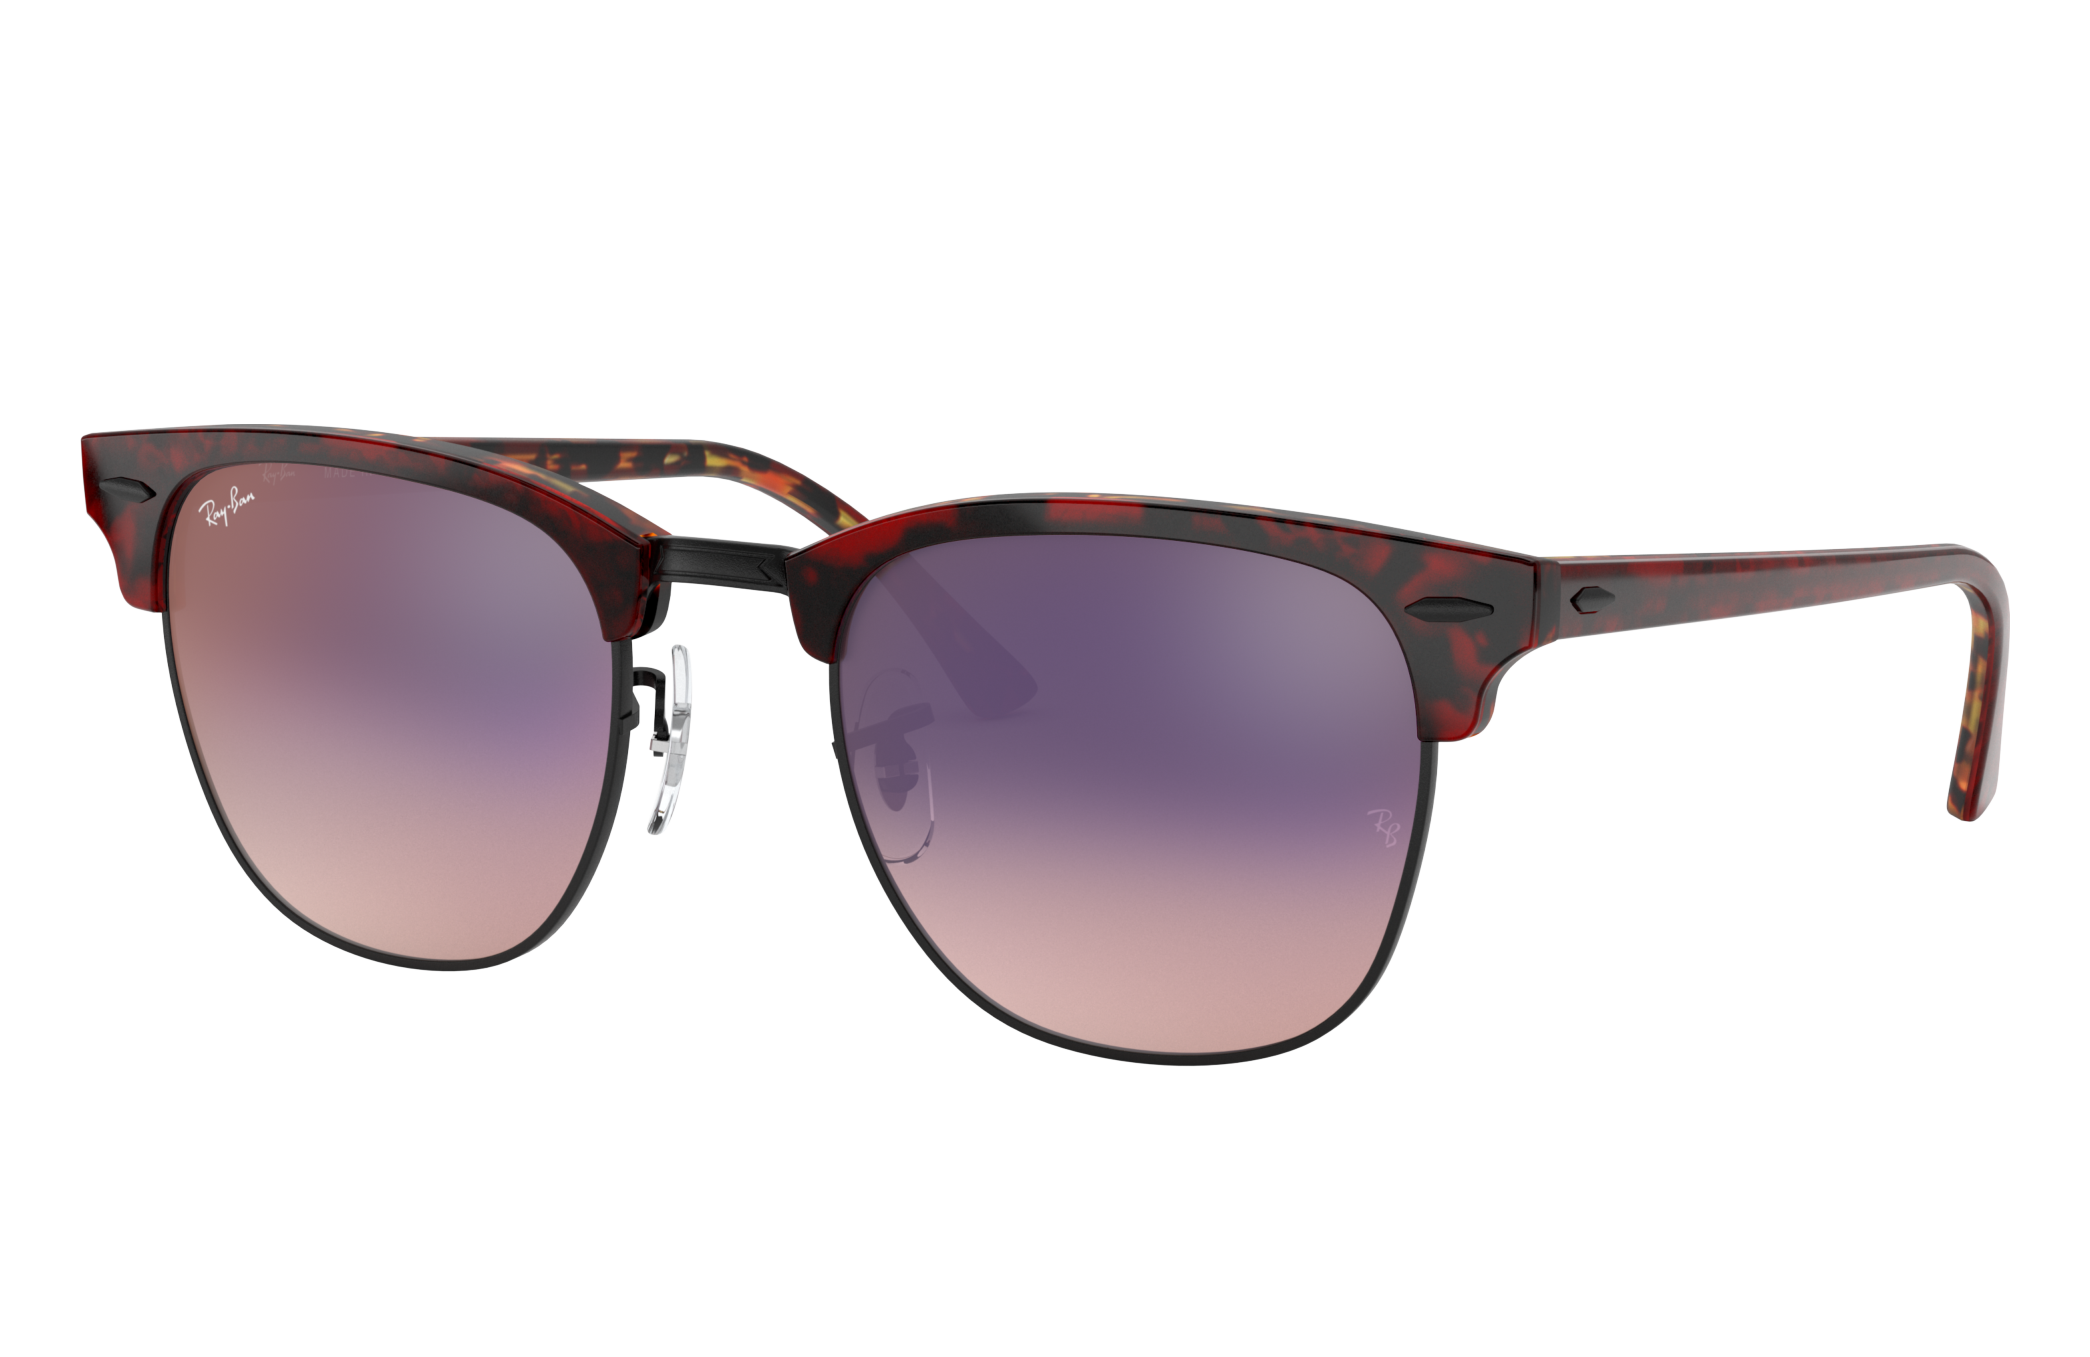 Ray-Ban Clubmaster Color Mix Red Havana, Violet Lenses - RB3016